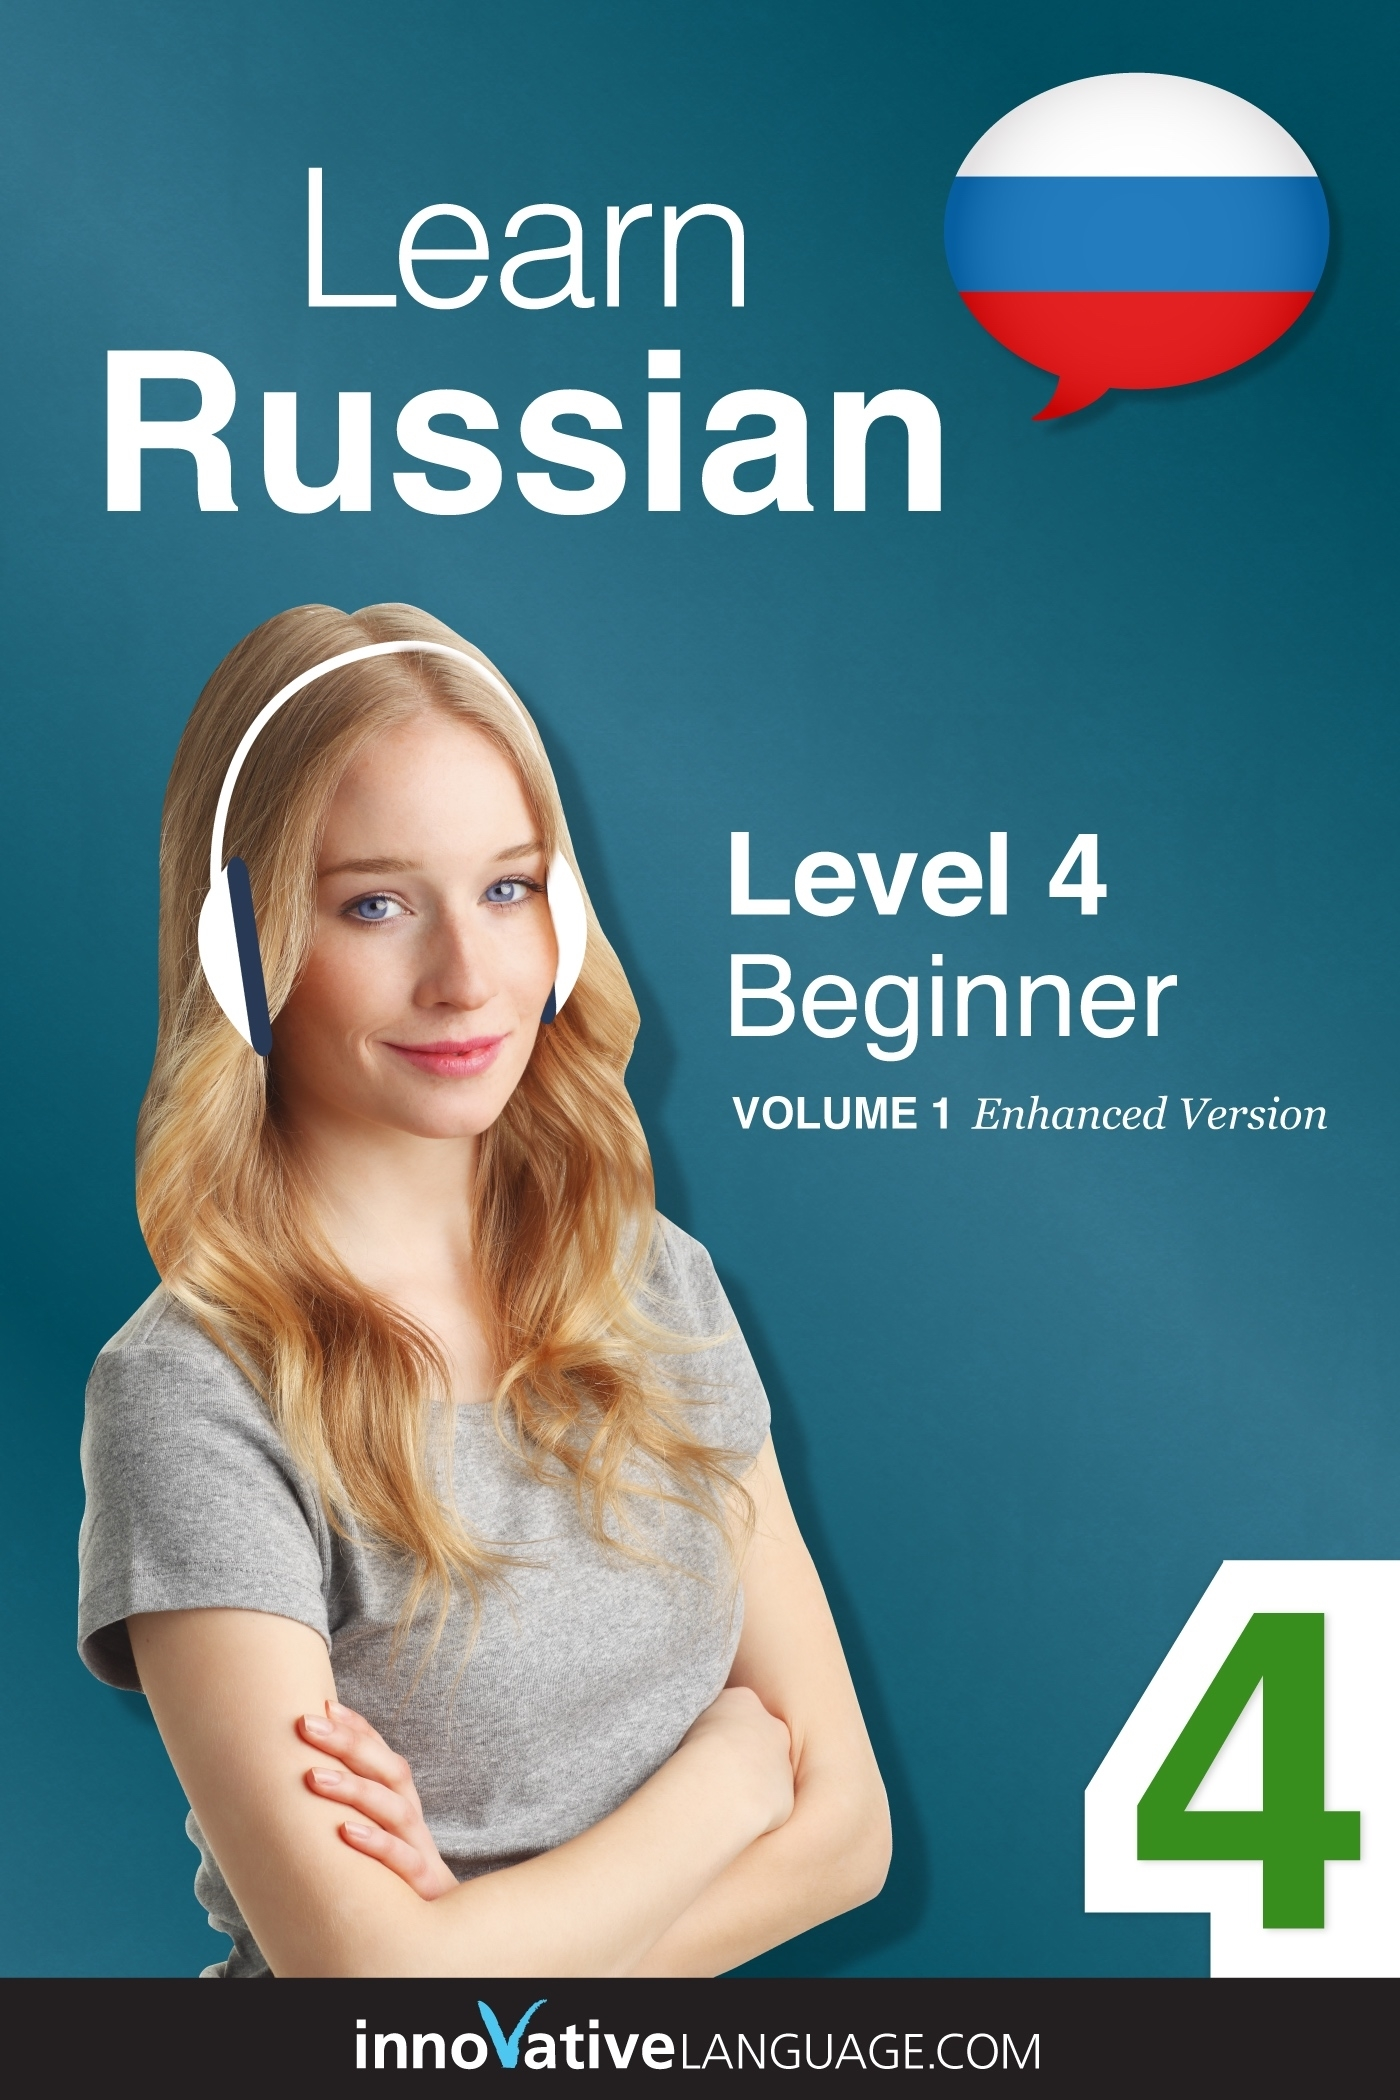 [eBook] Learn Russian - Level 4: Beginner